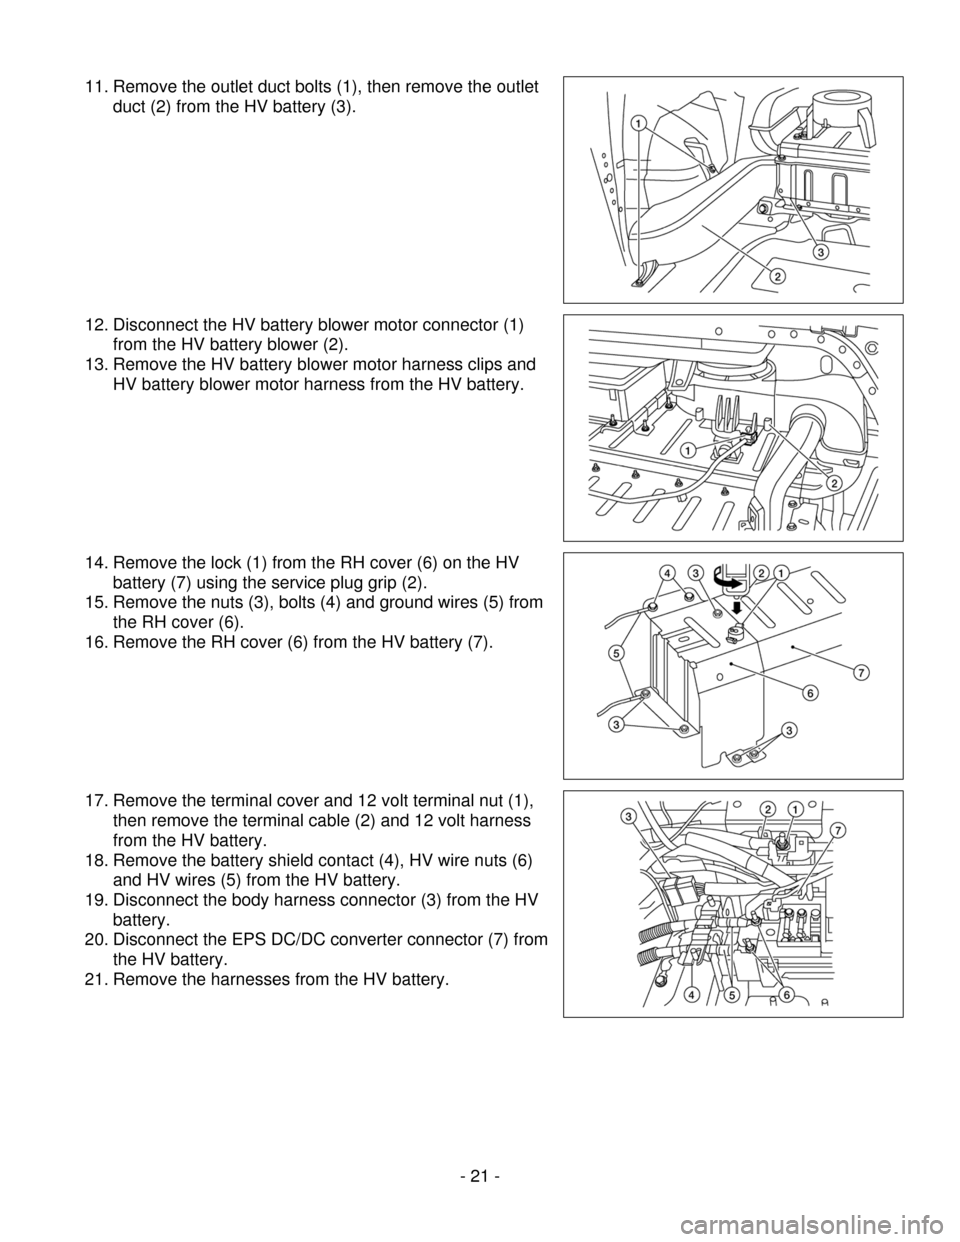 NISSAN ALTIMA HYBRID 2009 L32A / 4.G Dismantling Guide, Page 21